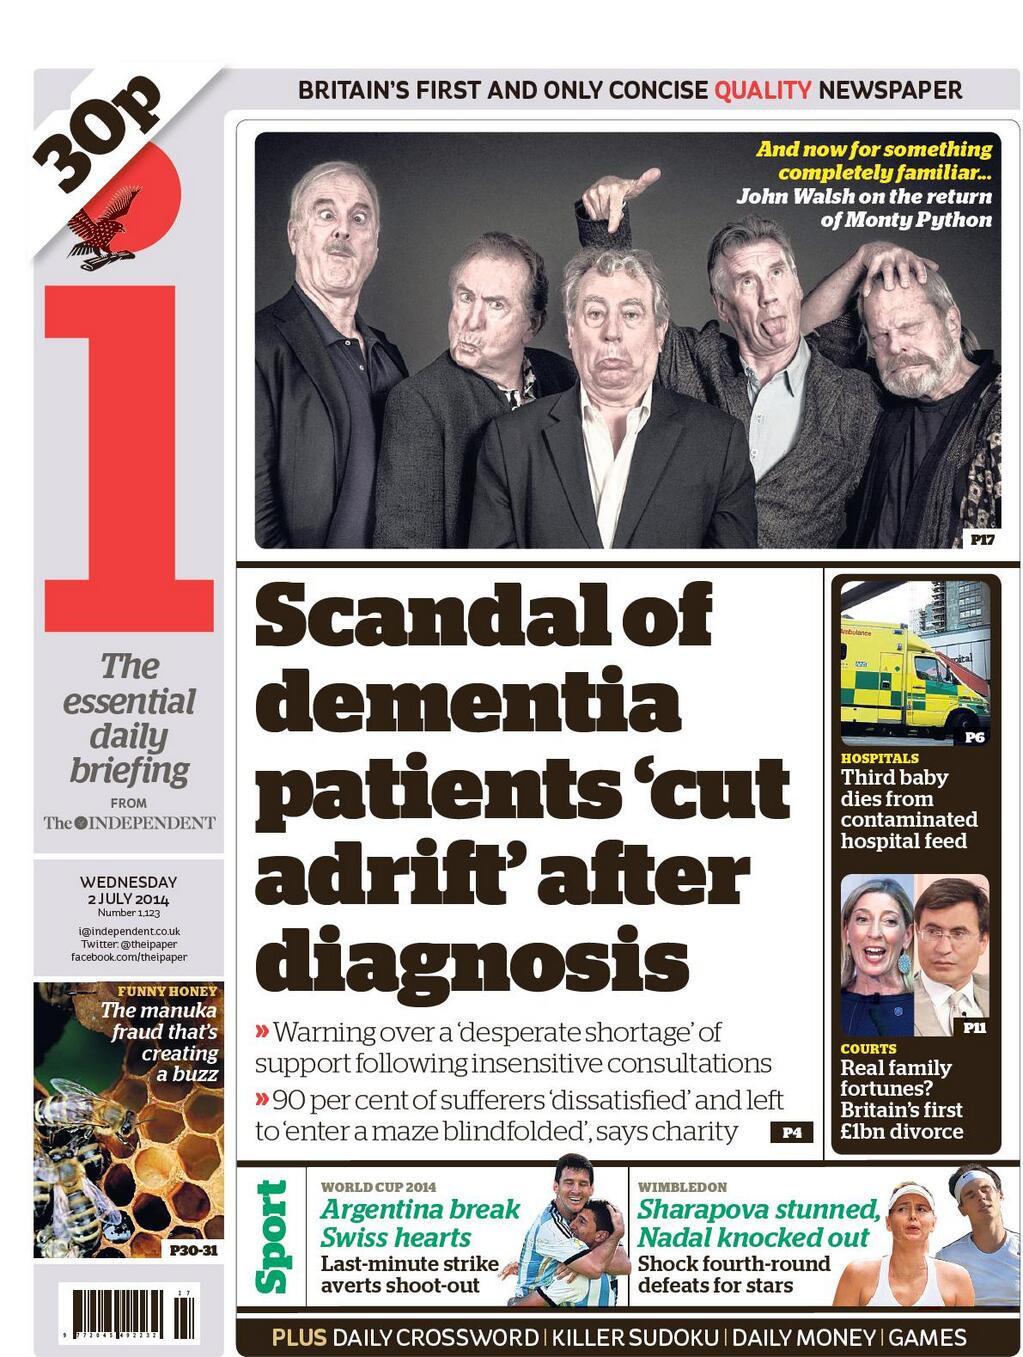 """Wednesday's i: """"Scandal of dementia patients 'cut adrift' after diagnosis"""" http://t.co/u9AgXPd22C #TomorrowsPapersToday #BBCPapers"""